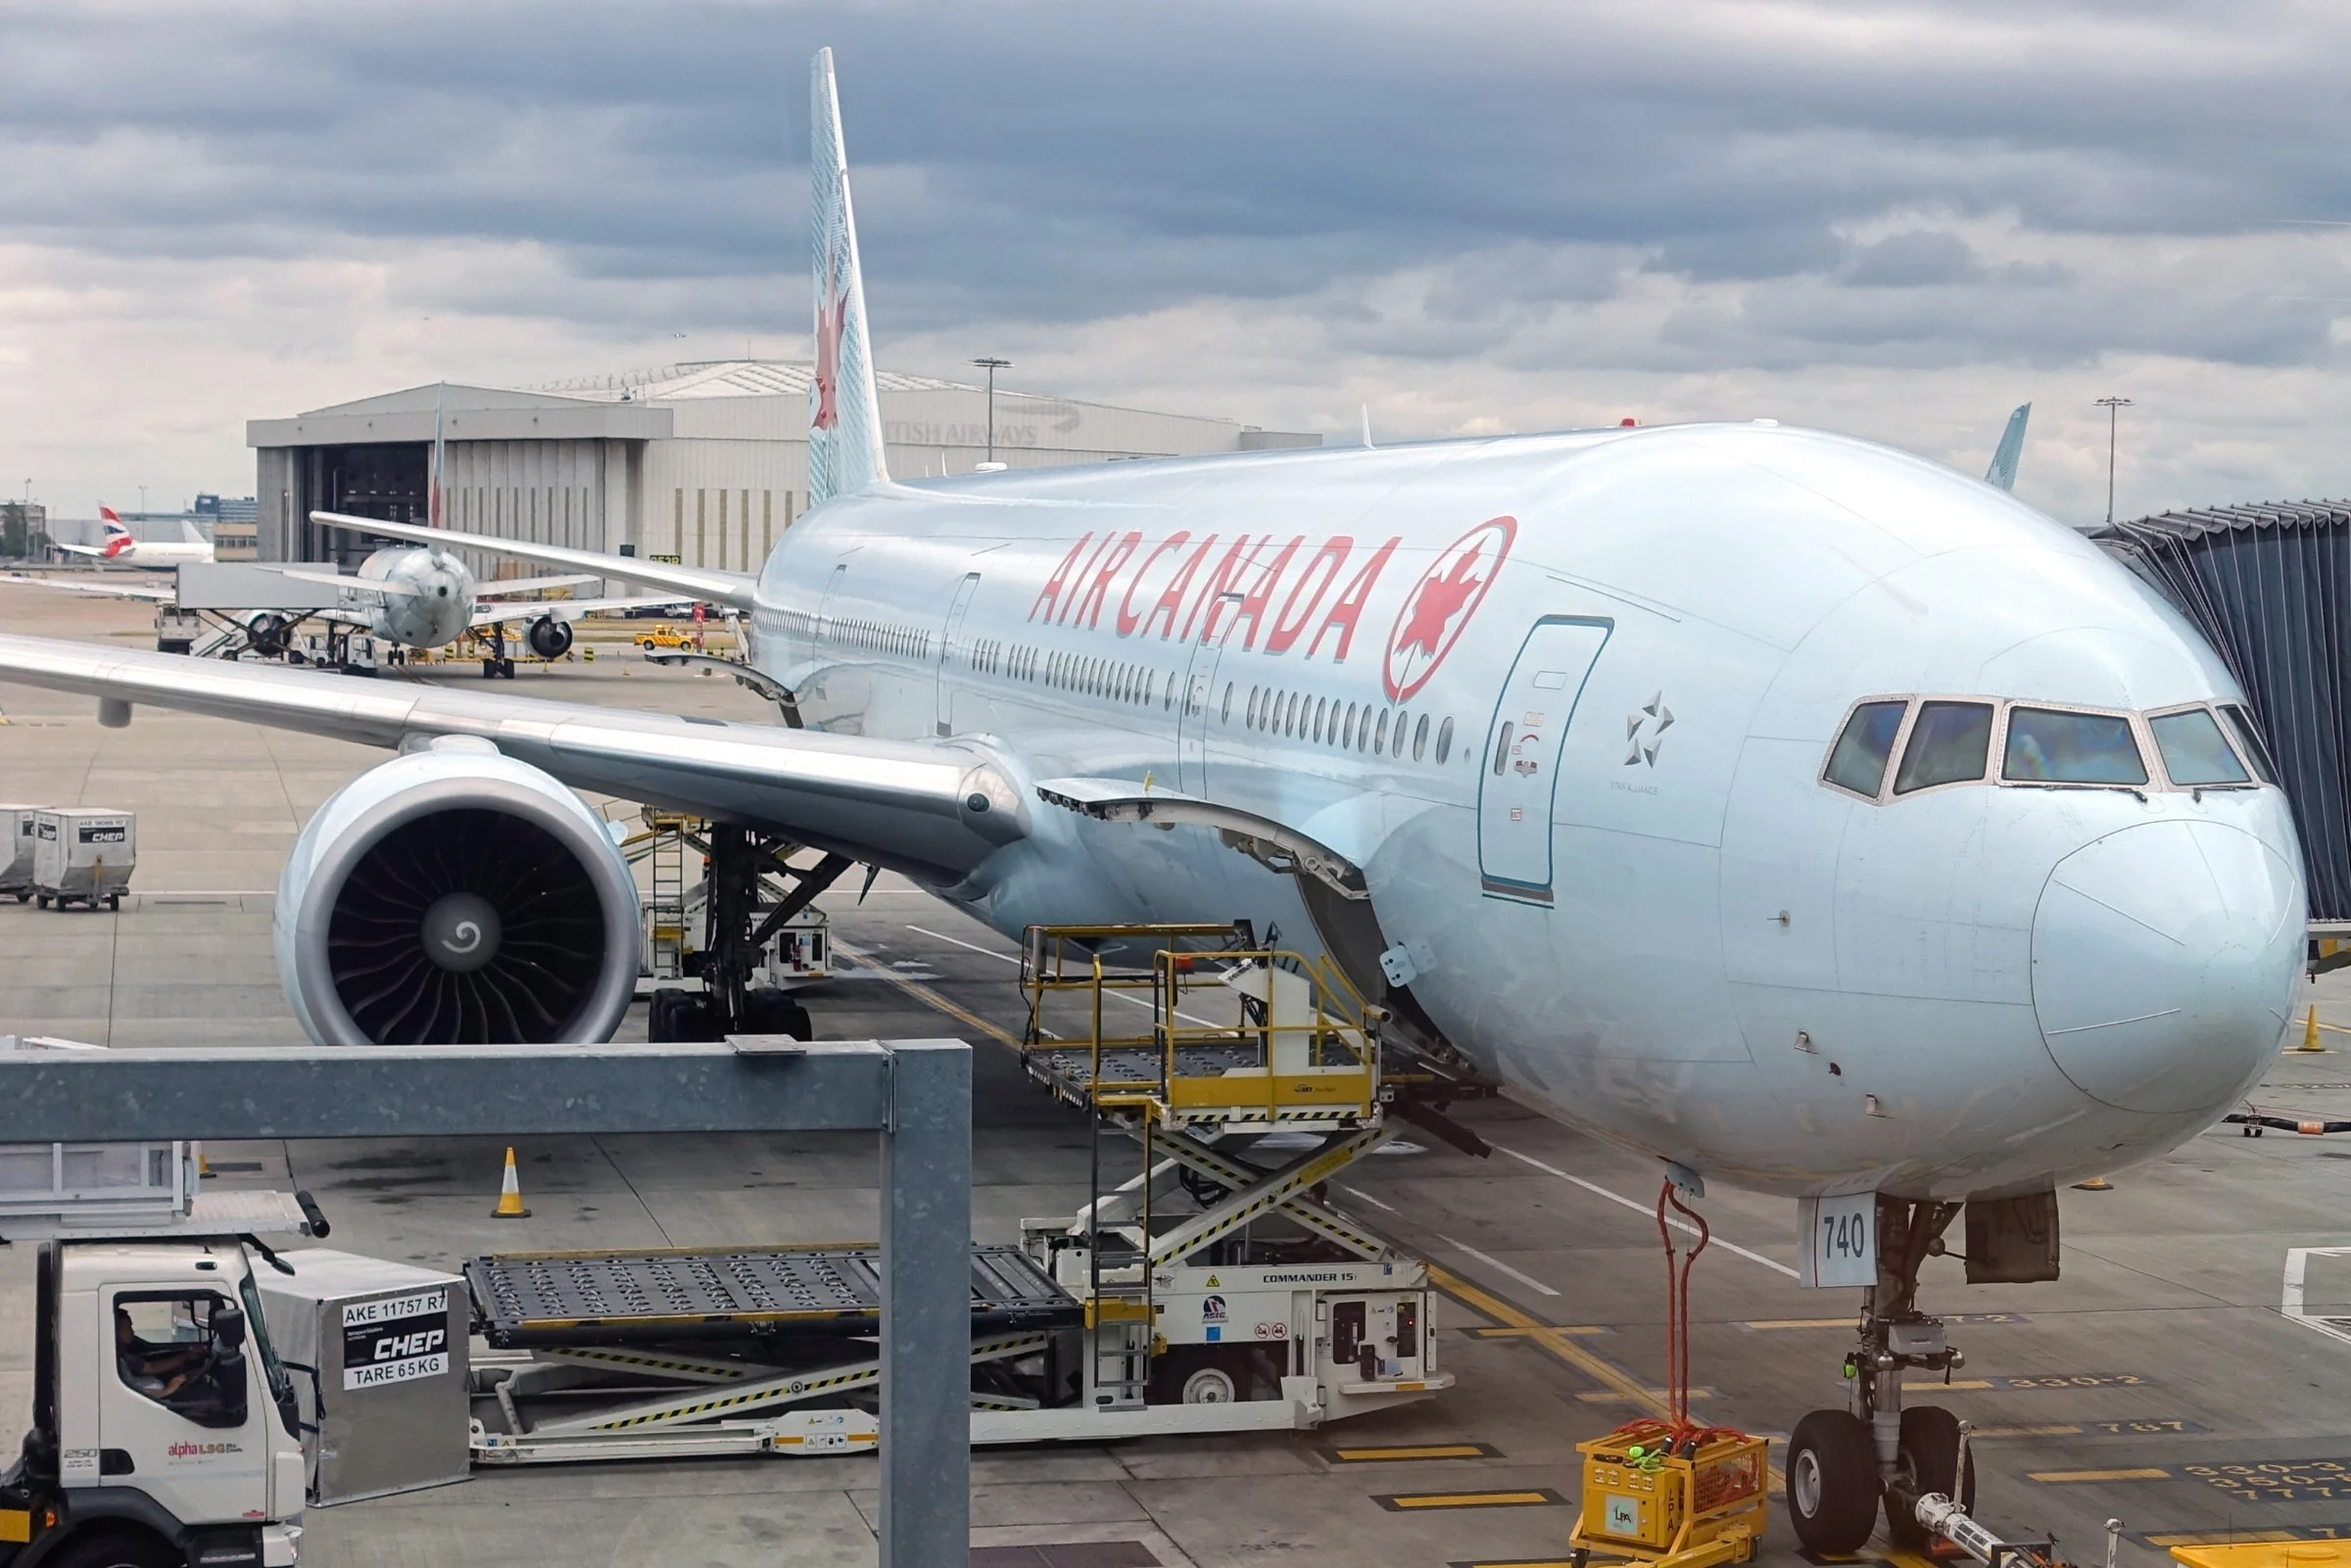 Air Canada 777 Tail Hit the Runway Upon Landing — Is That a Big Deal?